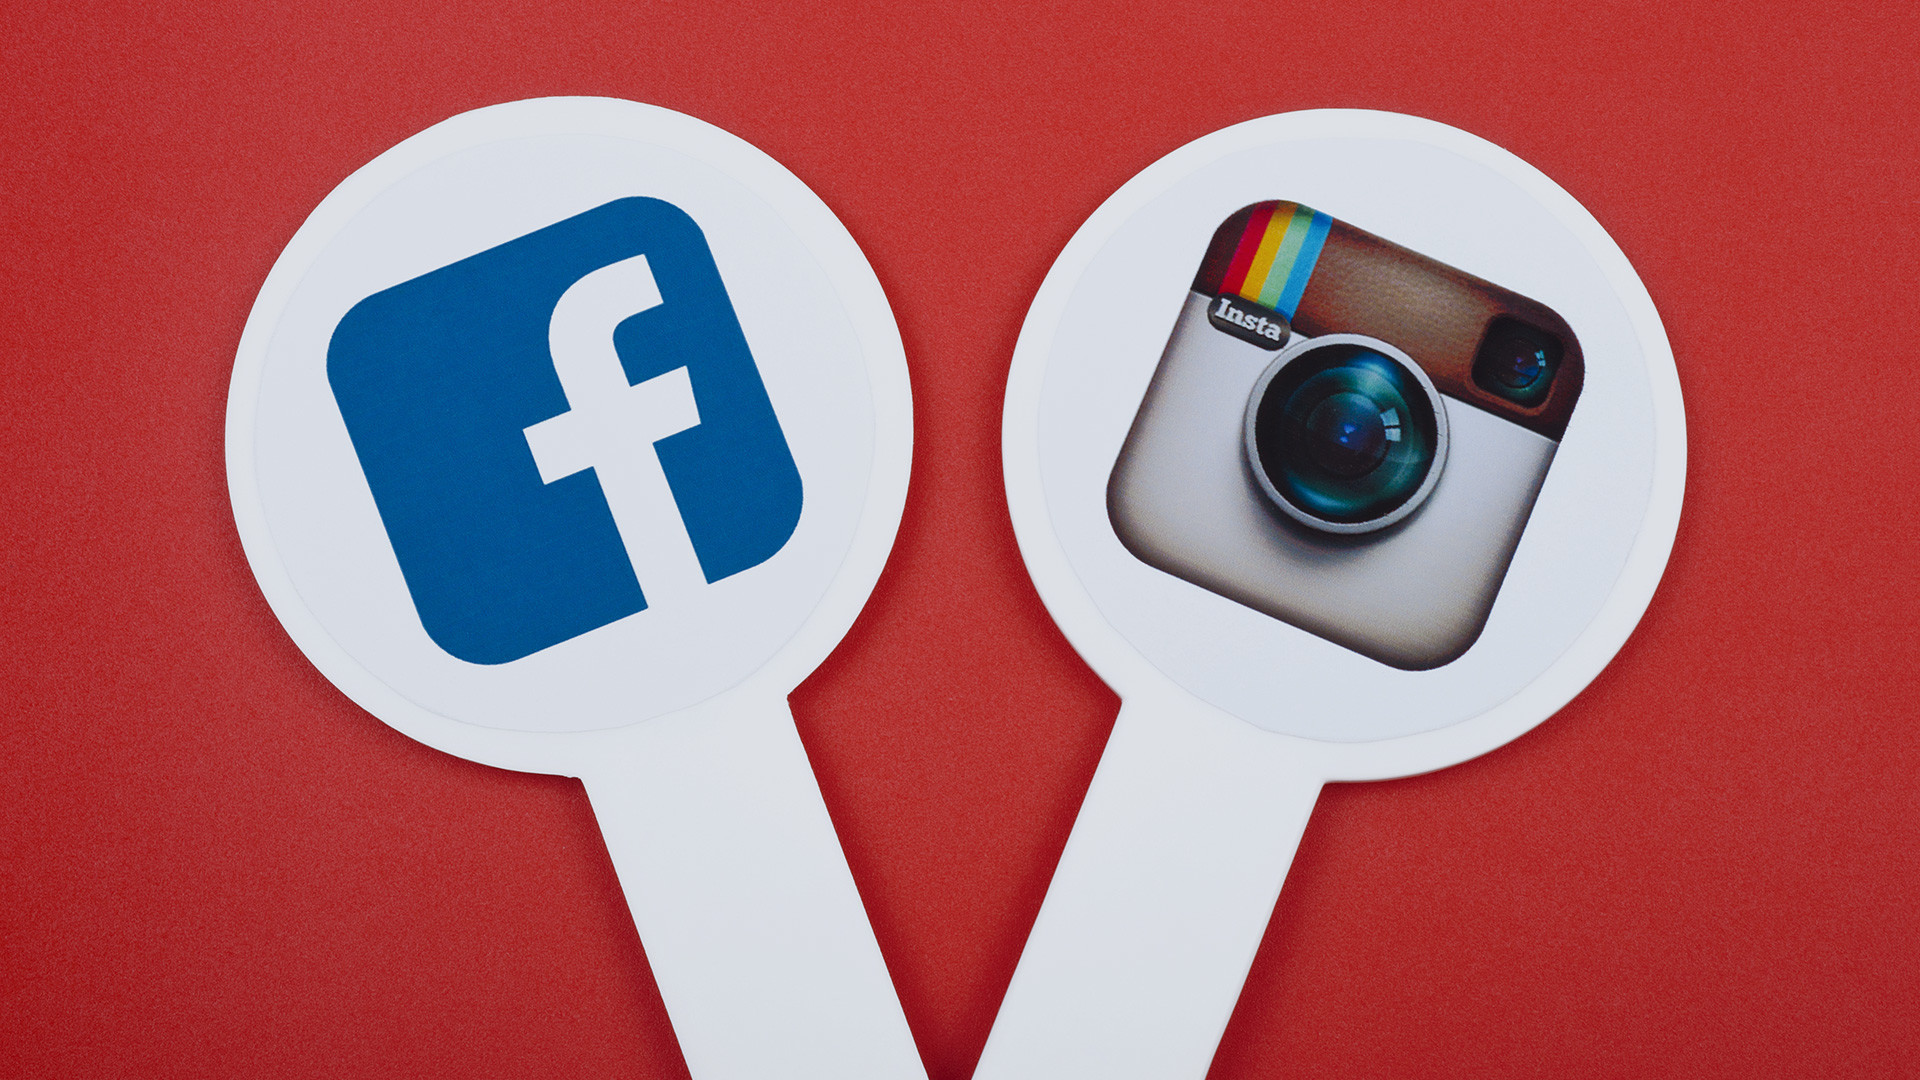 What Happened in Instagram in 5 Years?